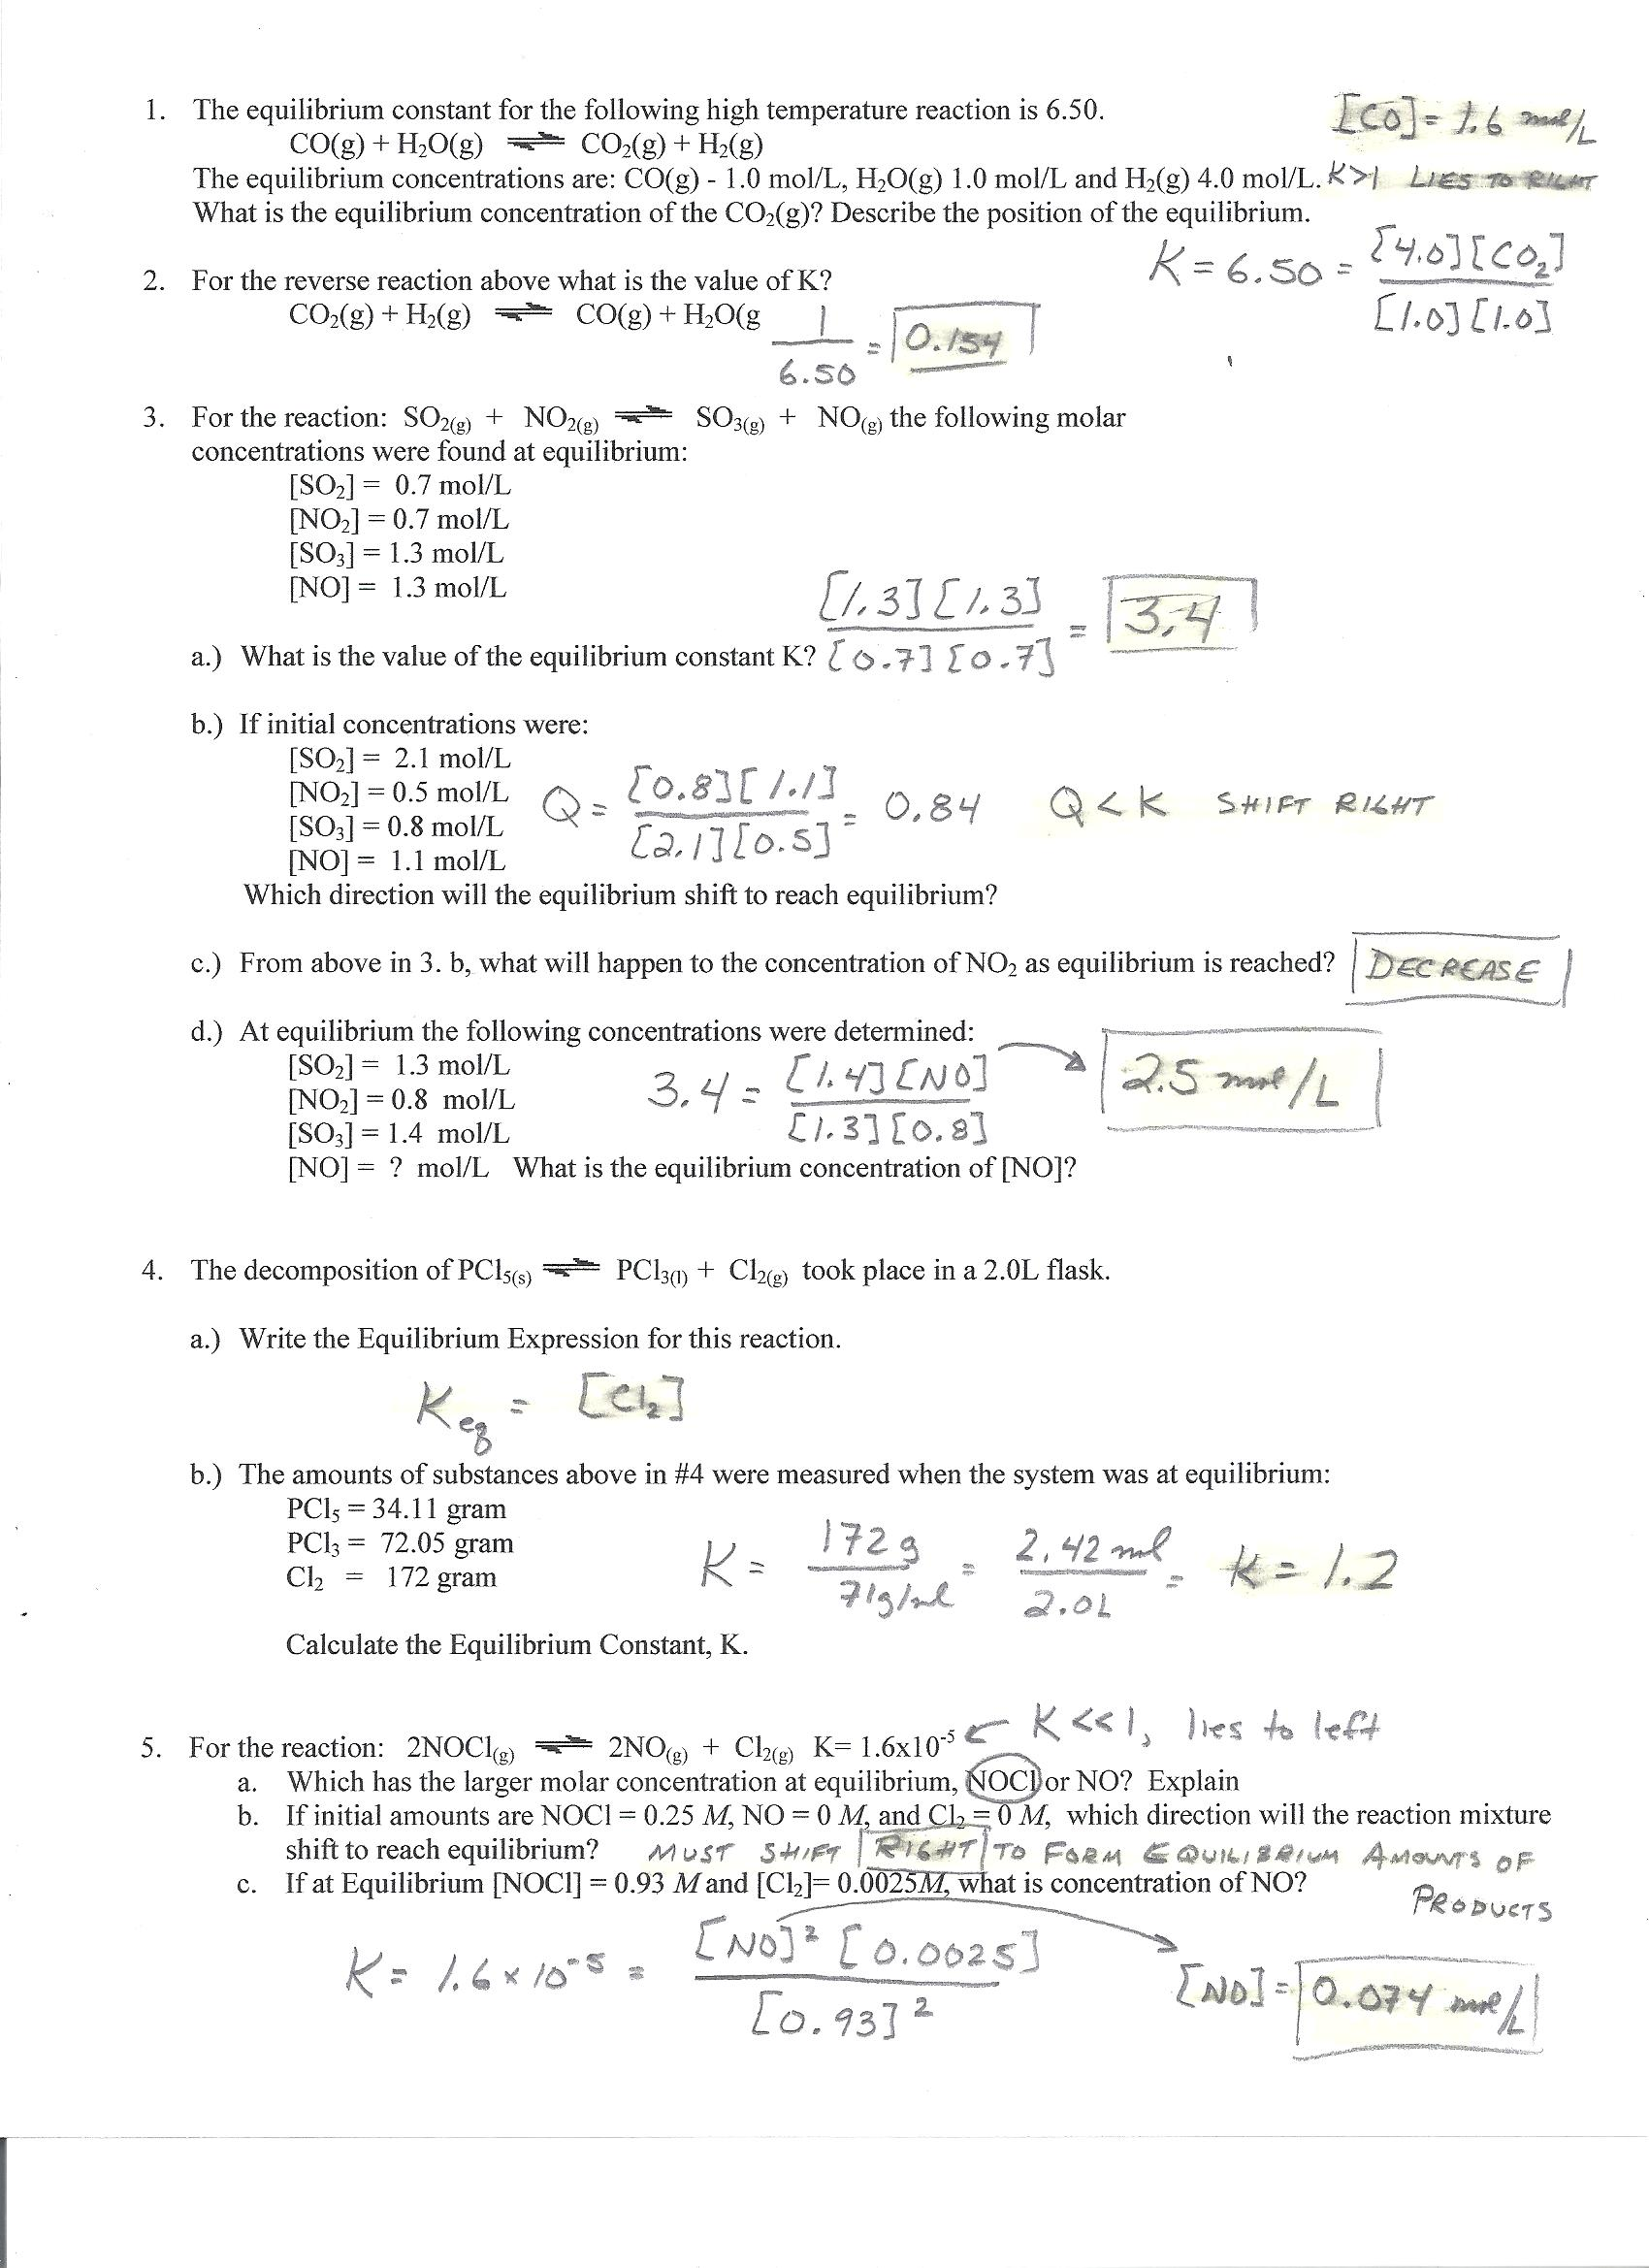 Decay Practice Worksheet 1